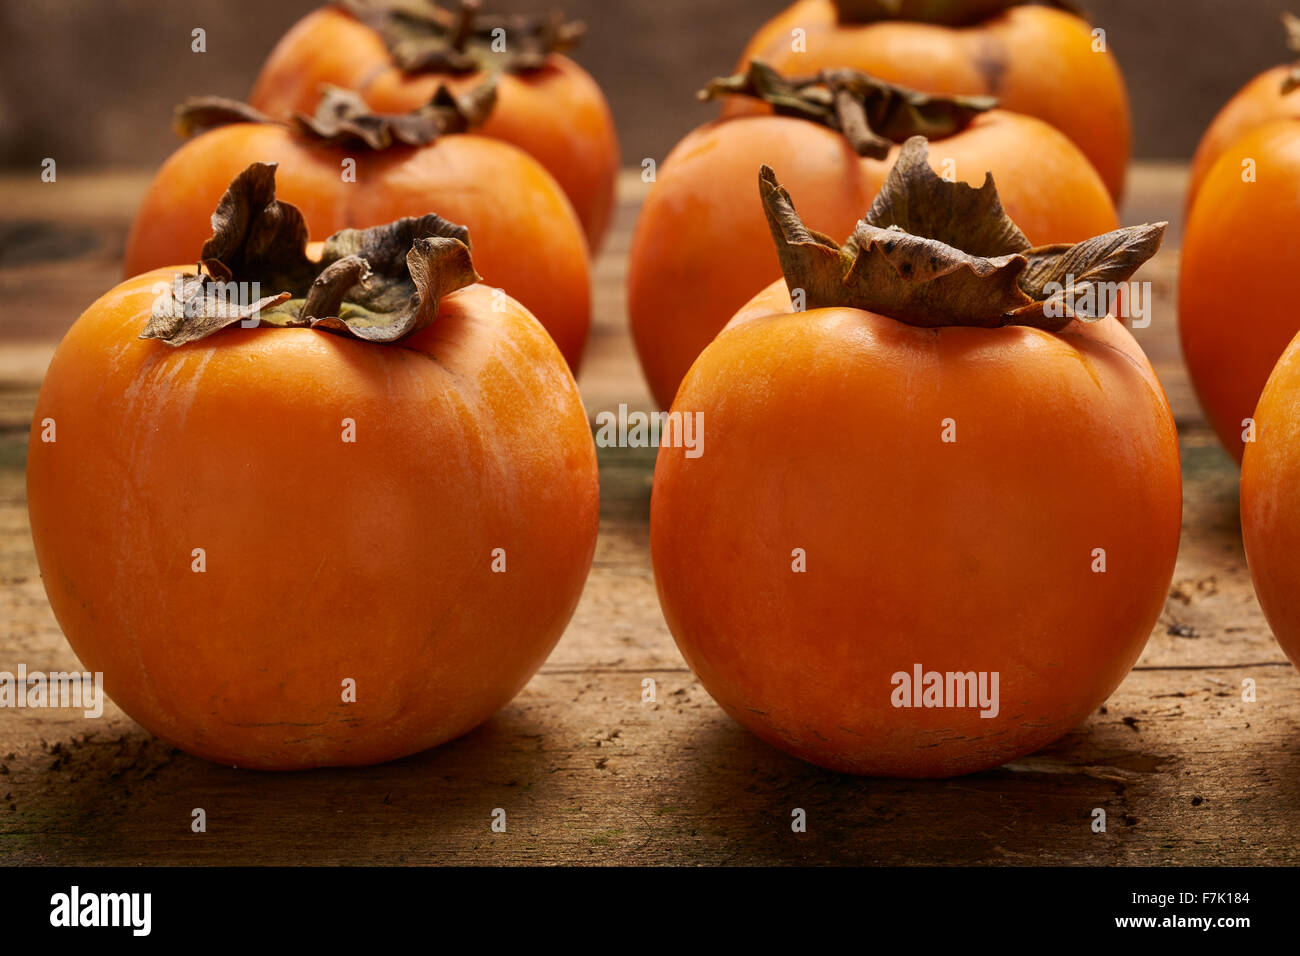 yummy orange persimmons propped up an old wooden table - Stock Image